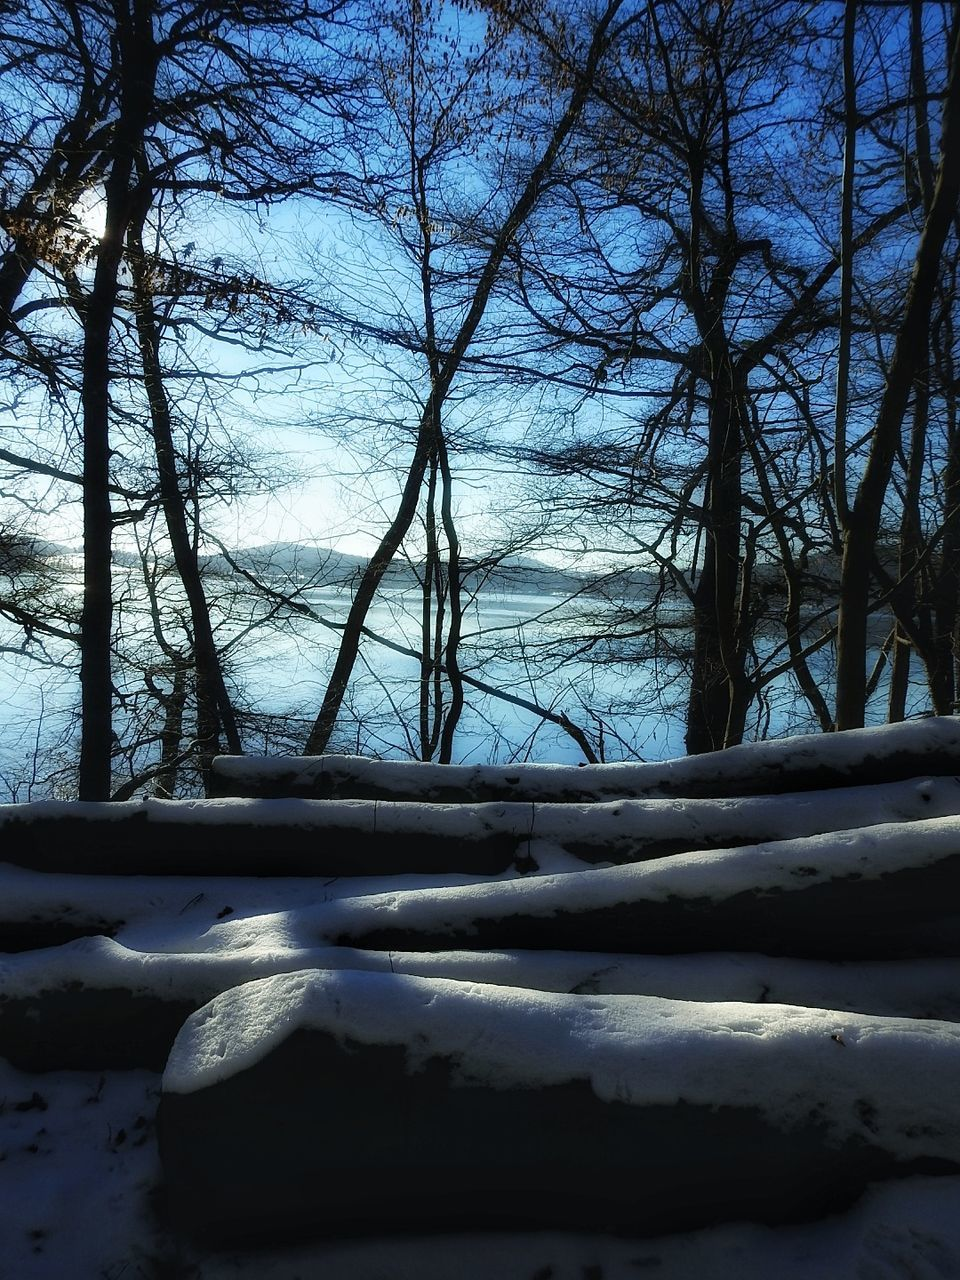 nature, tranquility, tree, winter, no people, tranquil scene, snow, beauty in nature, cold temperature, outdoors, water, bare tree, scenics, sky, day, branch